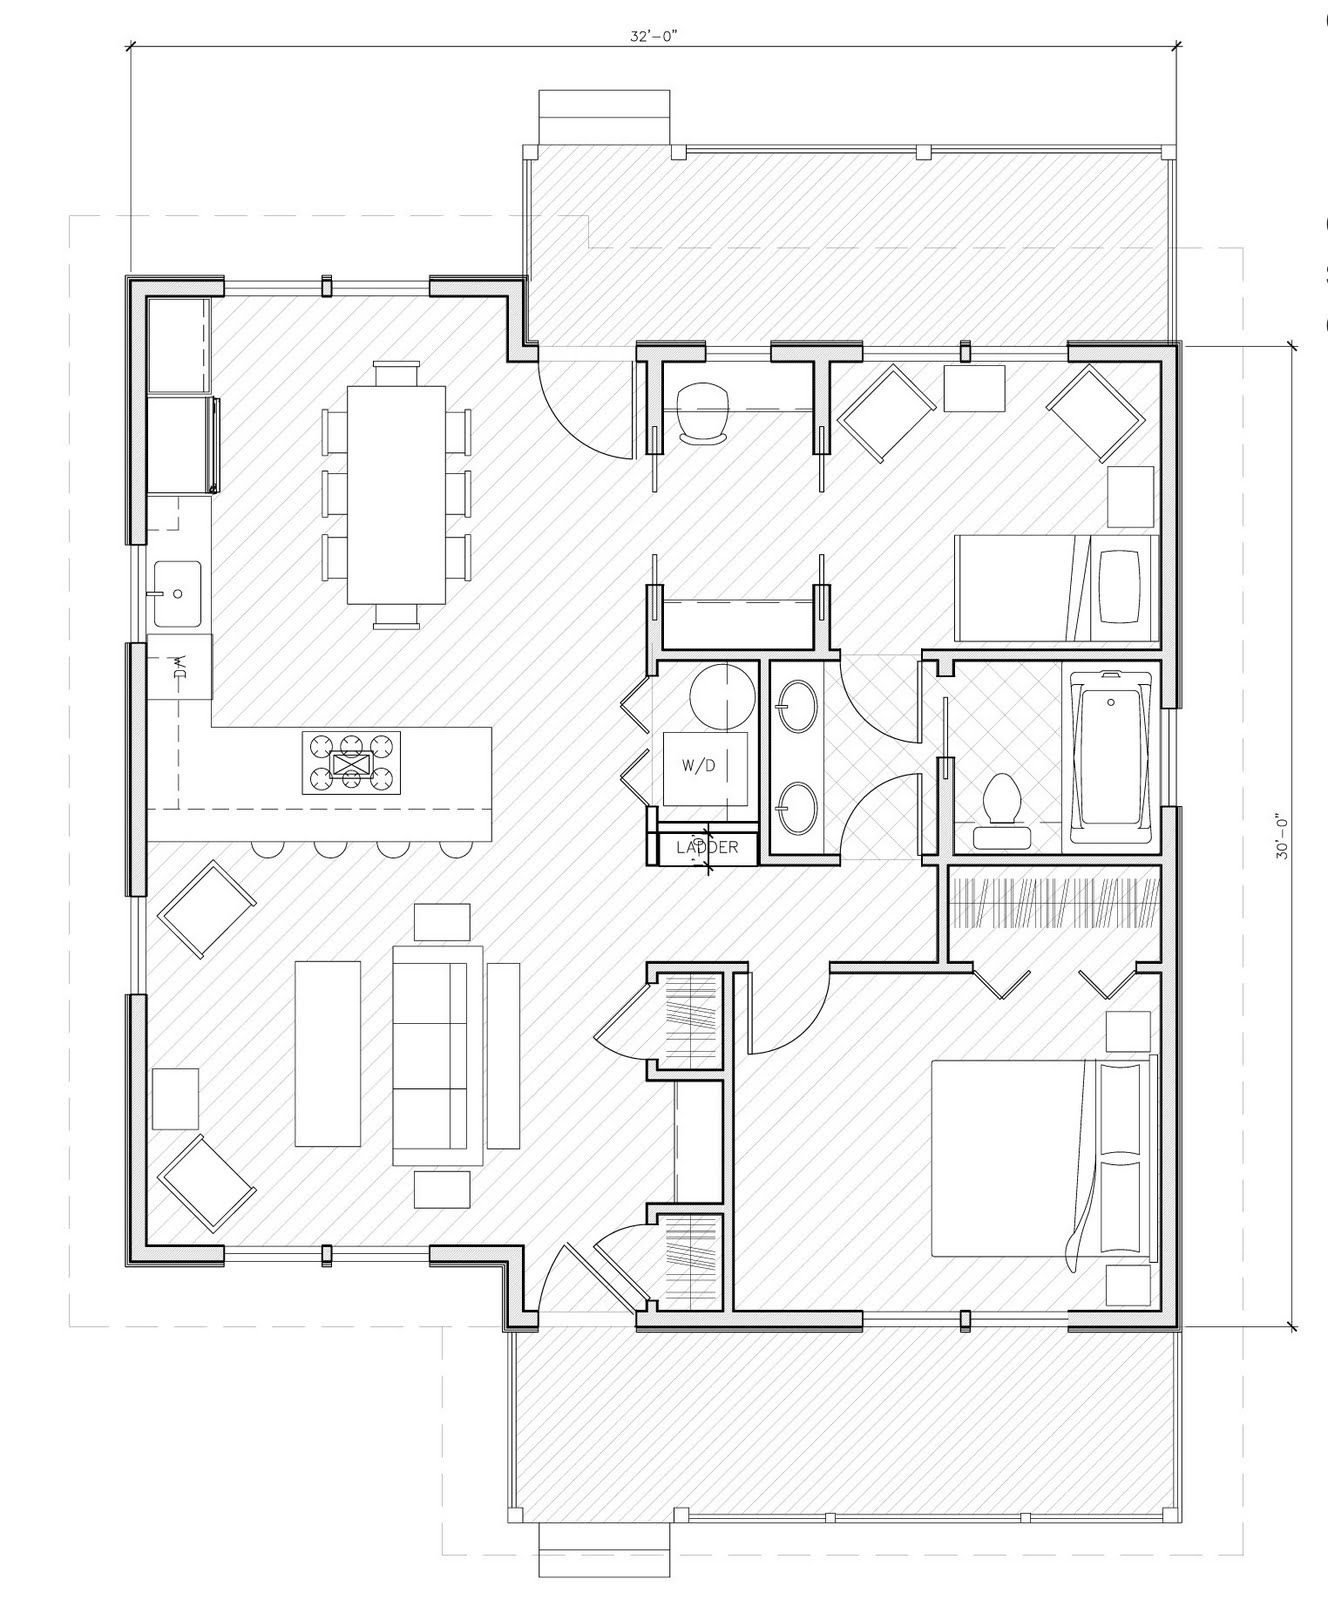 Small House Plans Under  Sq Ft House Design Pinterest - Small homes under 1000 sq ft